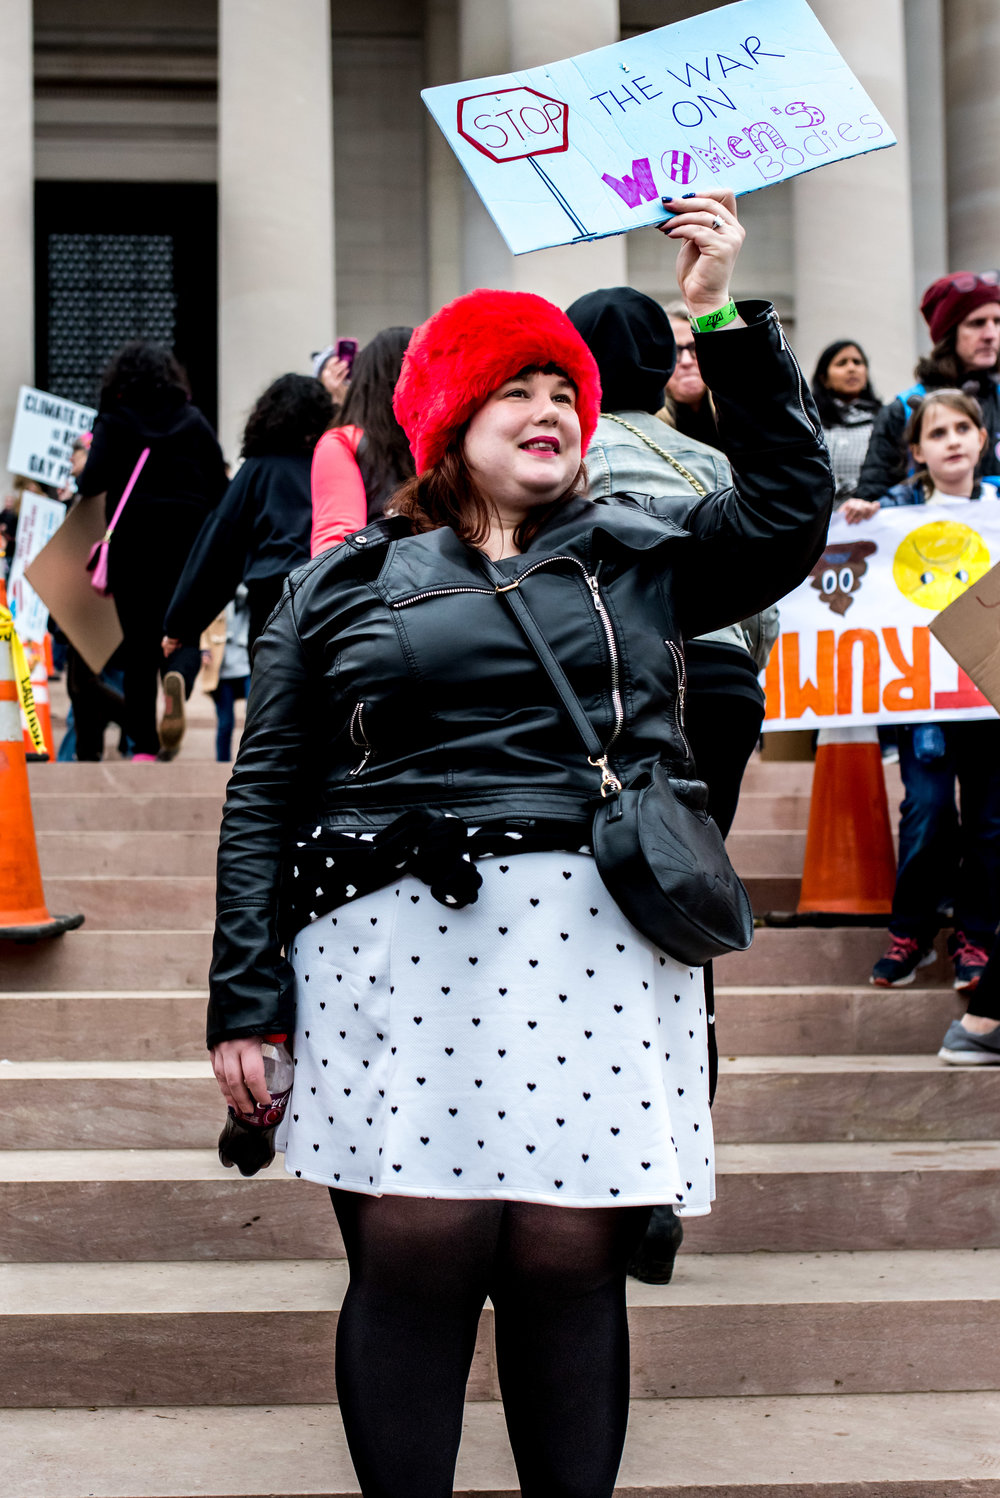 Women's-March-Photo-By-Tricia-Suriani-Ramsay-53.jpg